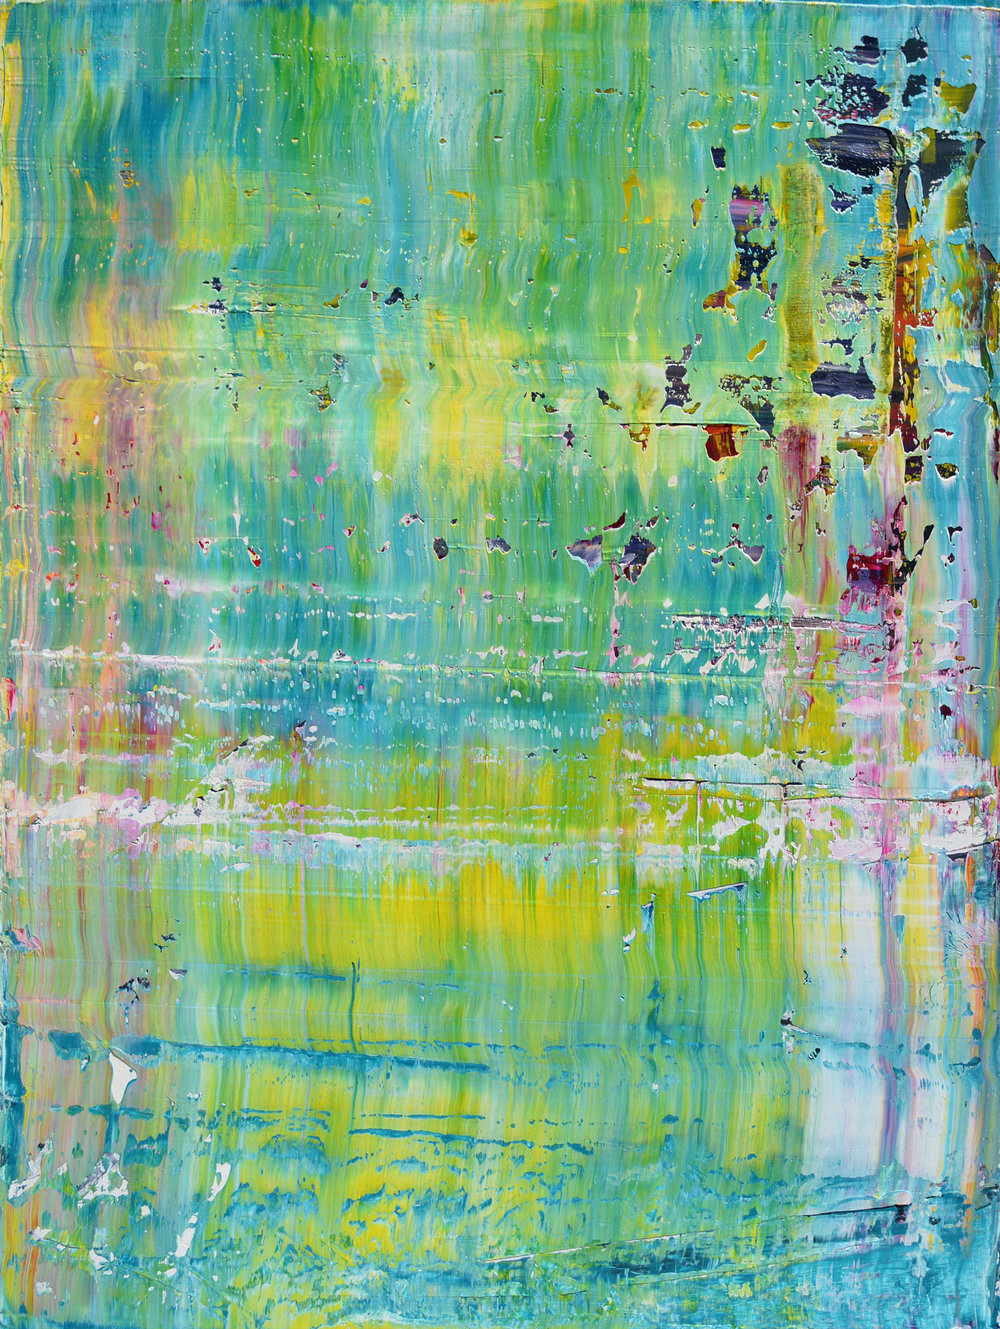 """Trip"" is an original, abstract oil painting by Los Angeles based artist, Laura Viapiano."